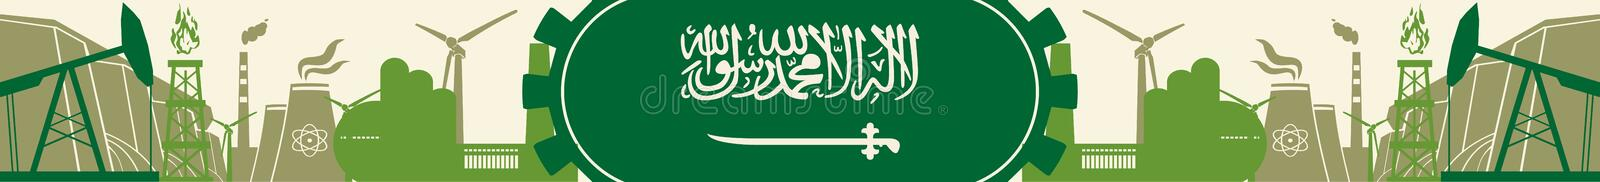 Download Energy And Power Icons Set. Header Banner With Saudi Arabia Flag Stock Vector - Illustration of header, engineering: 75829757